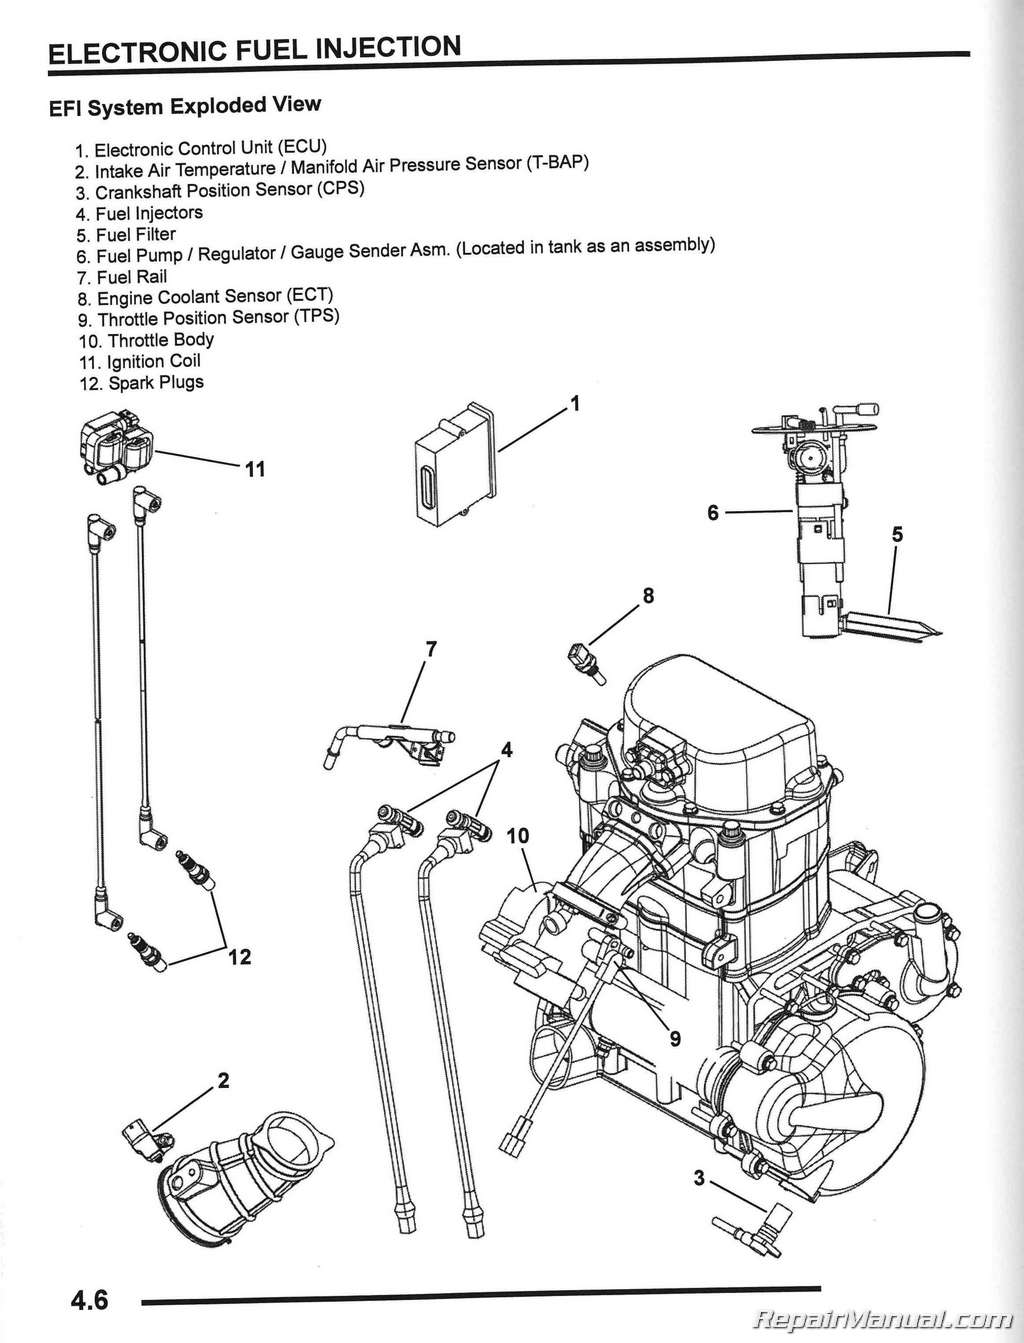 polaris rzr 800 wiring diagram trusted wiring diagram rh dafpods co 2008 polaris ranger wiring diagram 2008 polaris ranger wiring diagram